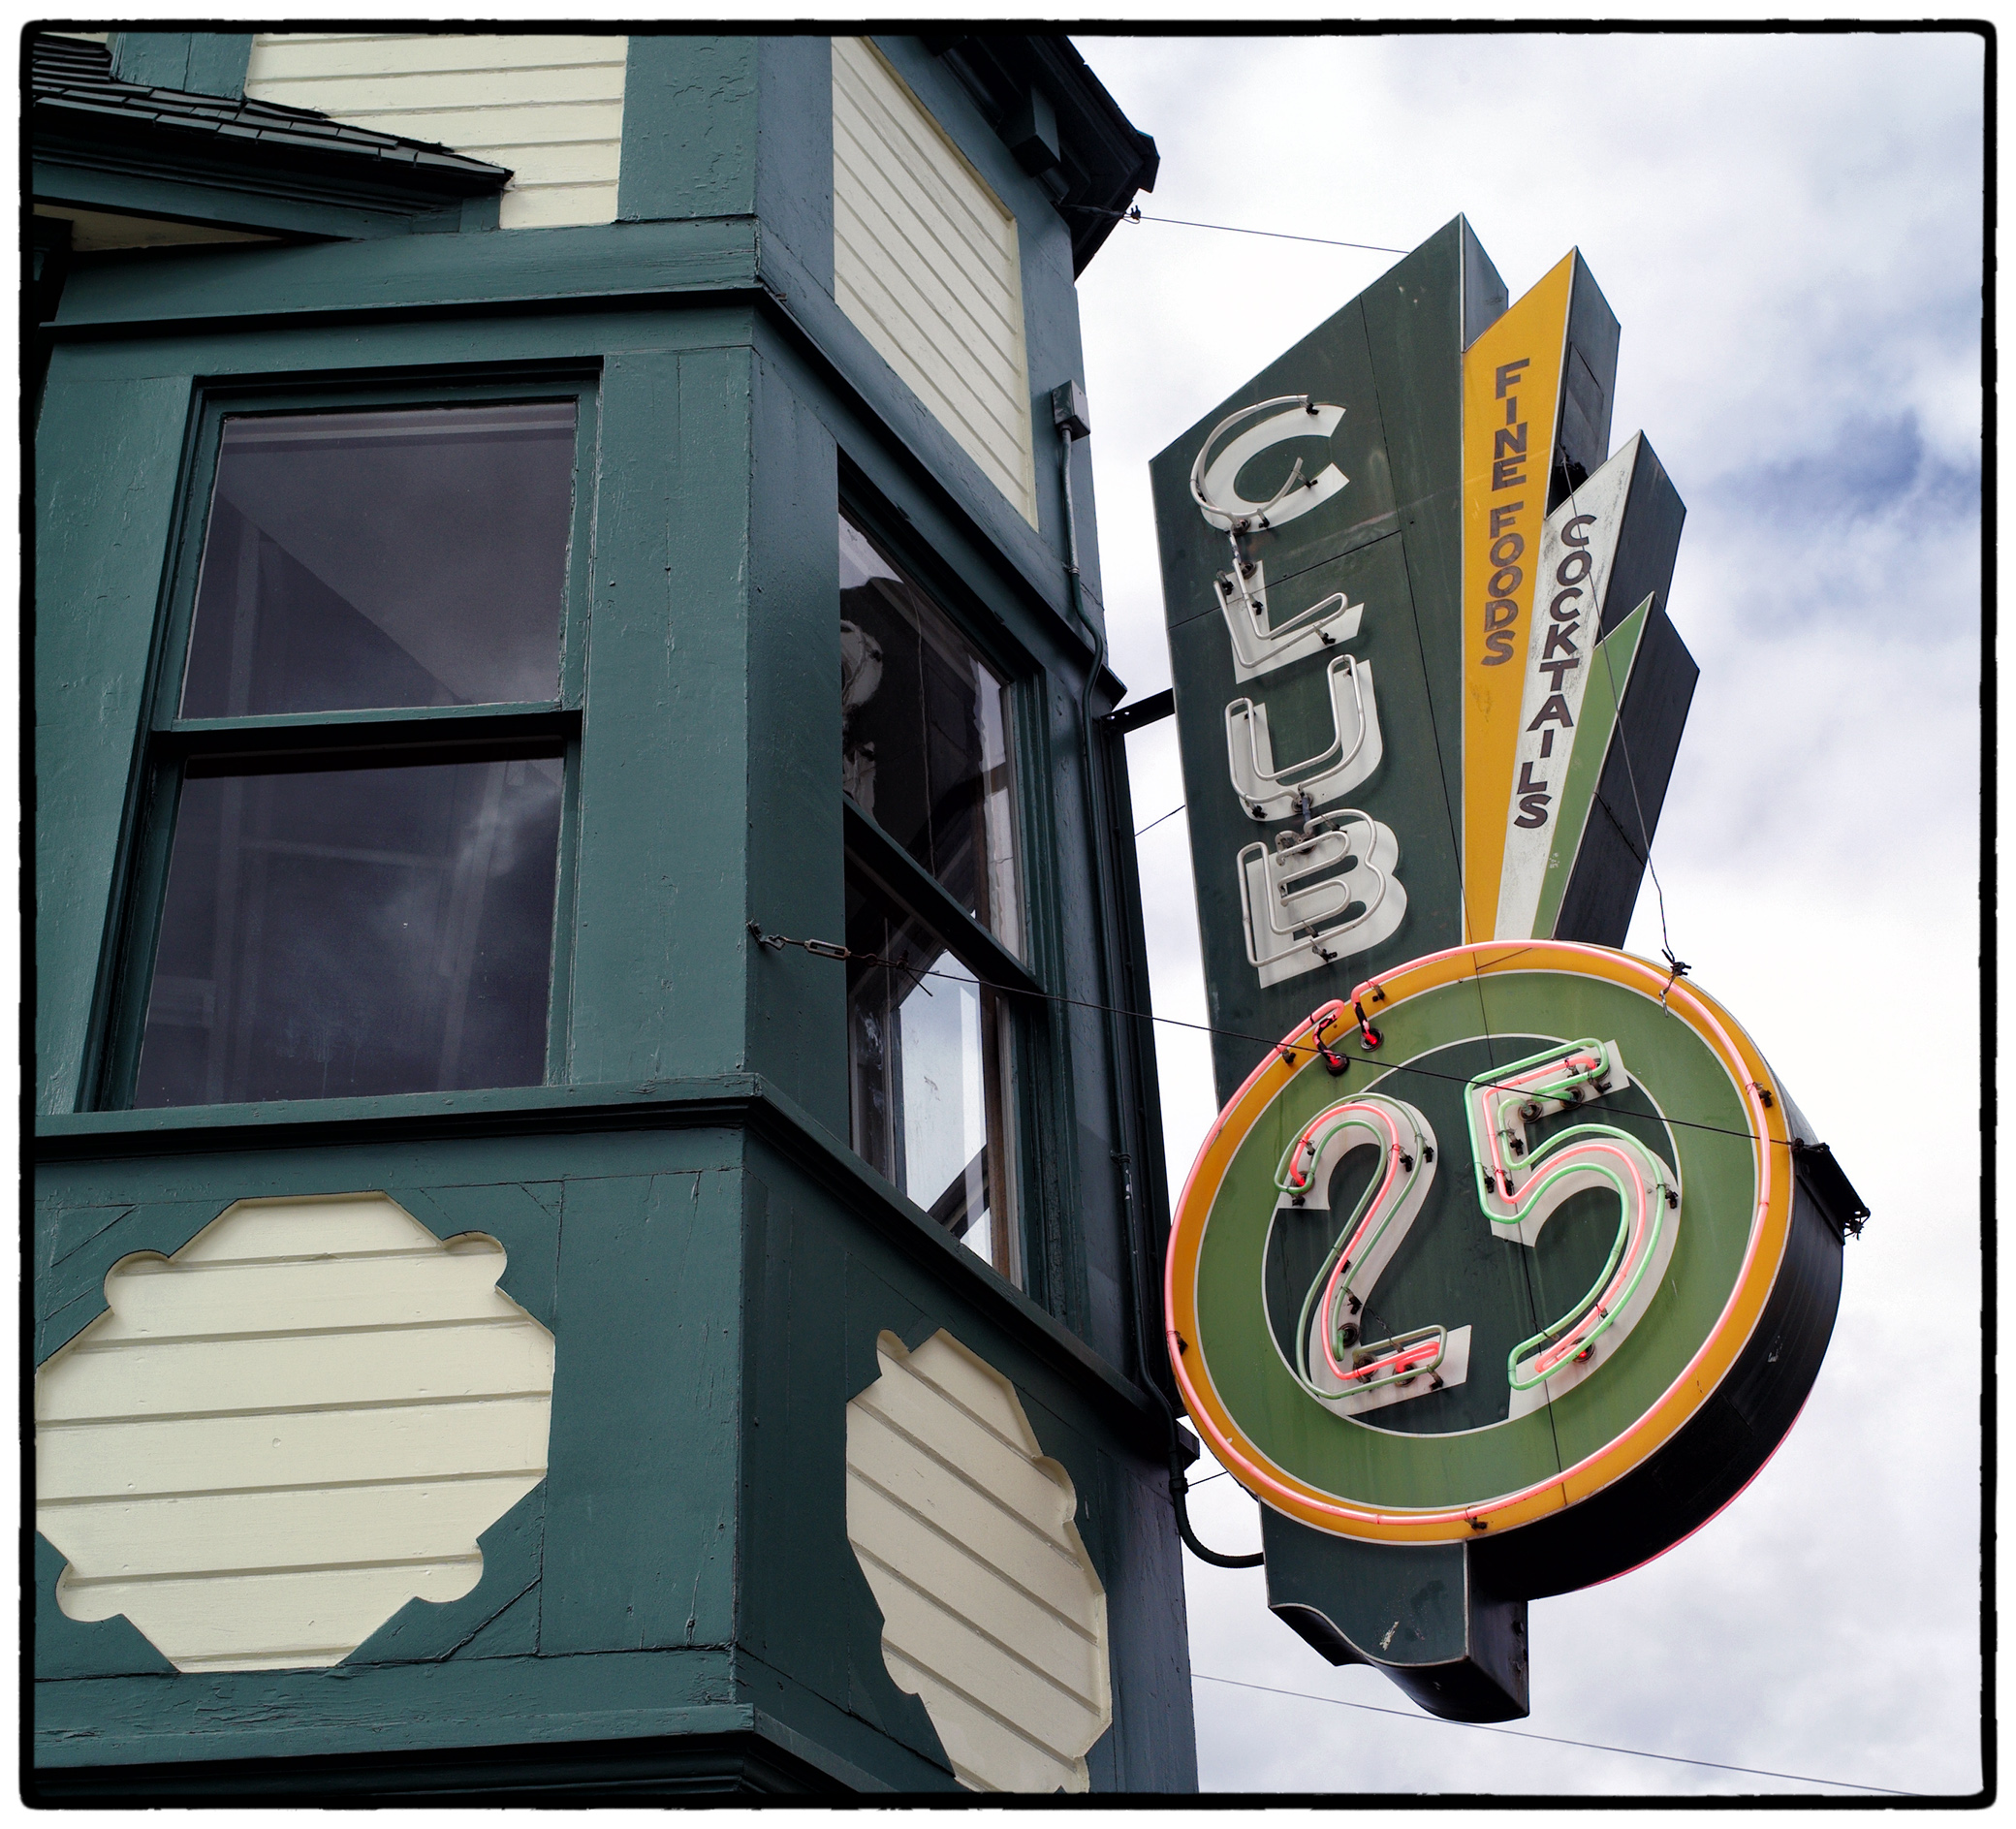 Club 25 sign on Fourth Avenue by bensonga in bensonga